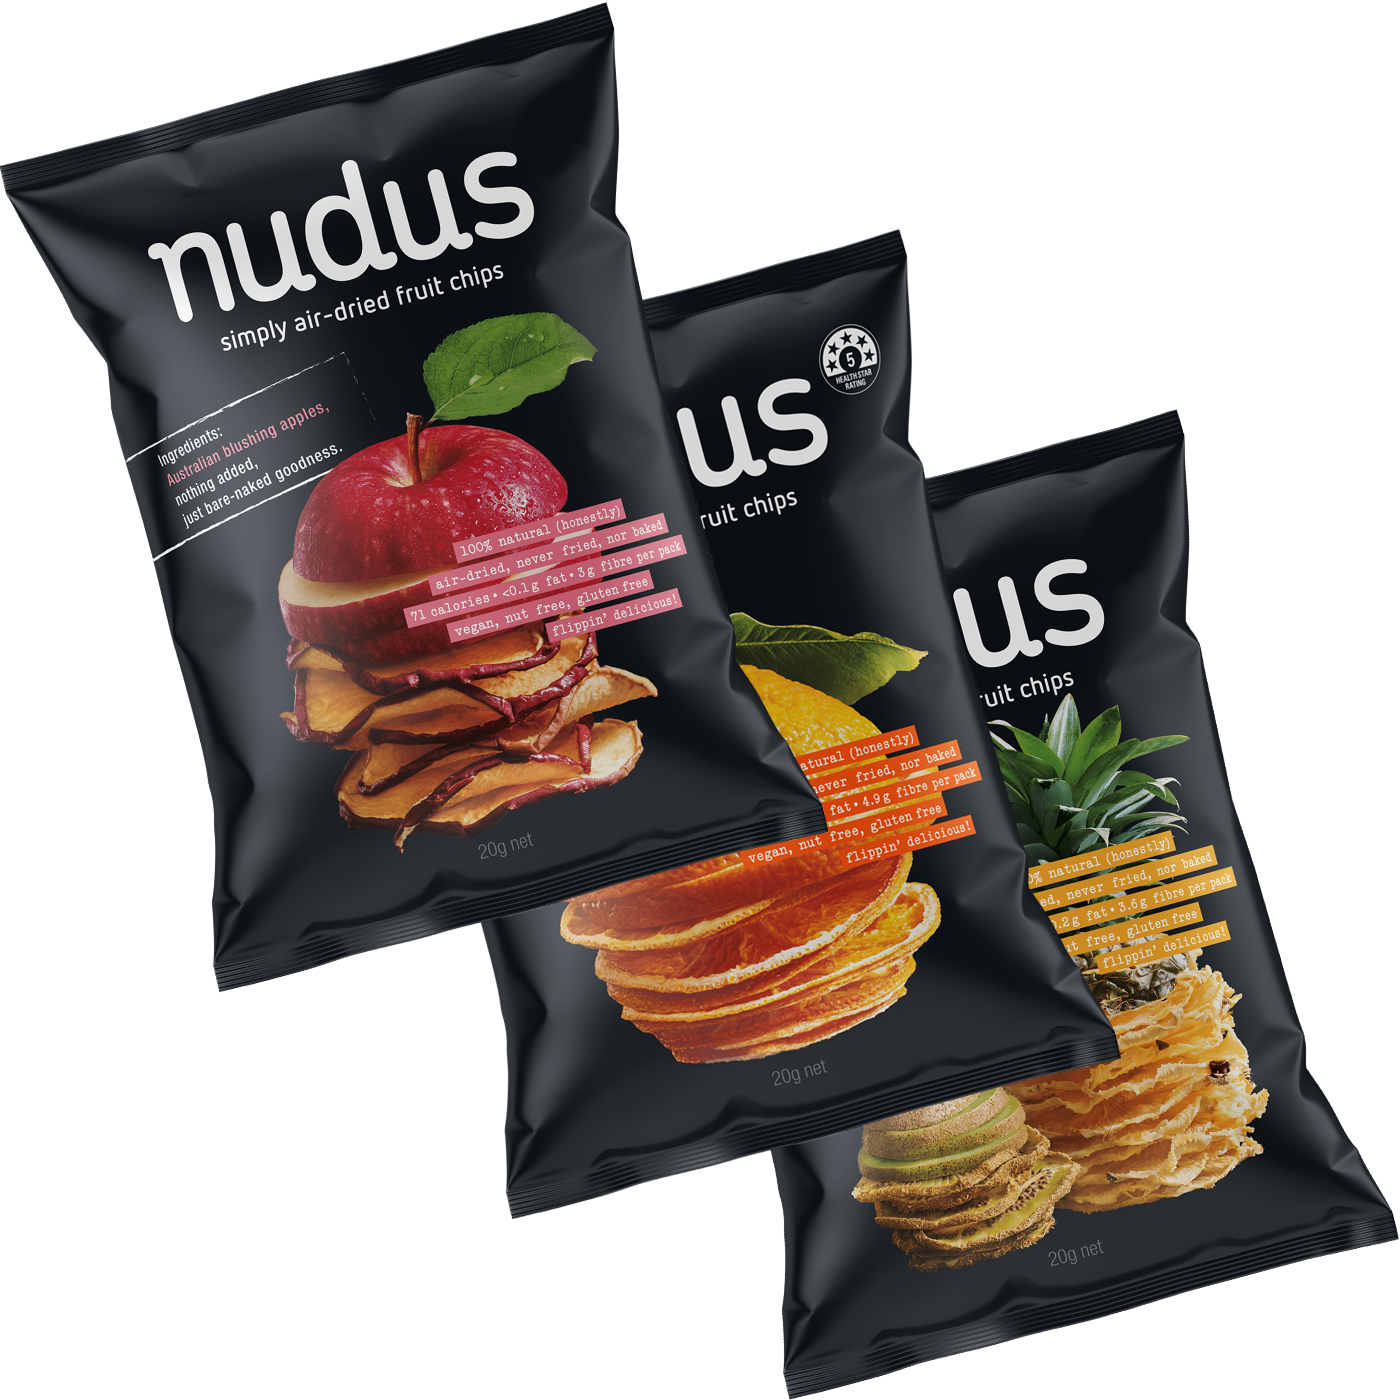 fruit chips box - 12 bags ($2.75 / 20g bag)